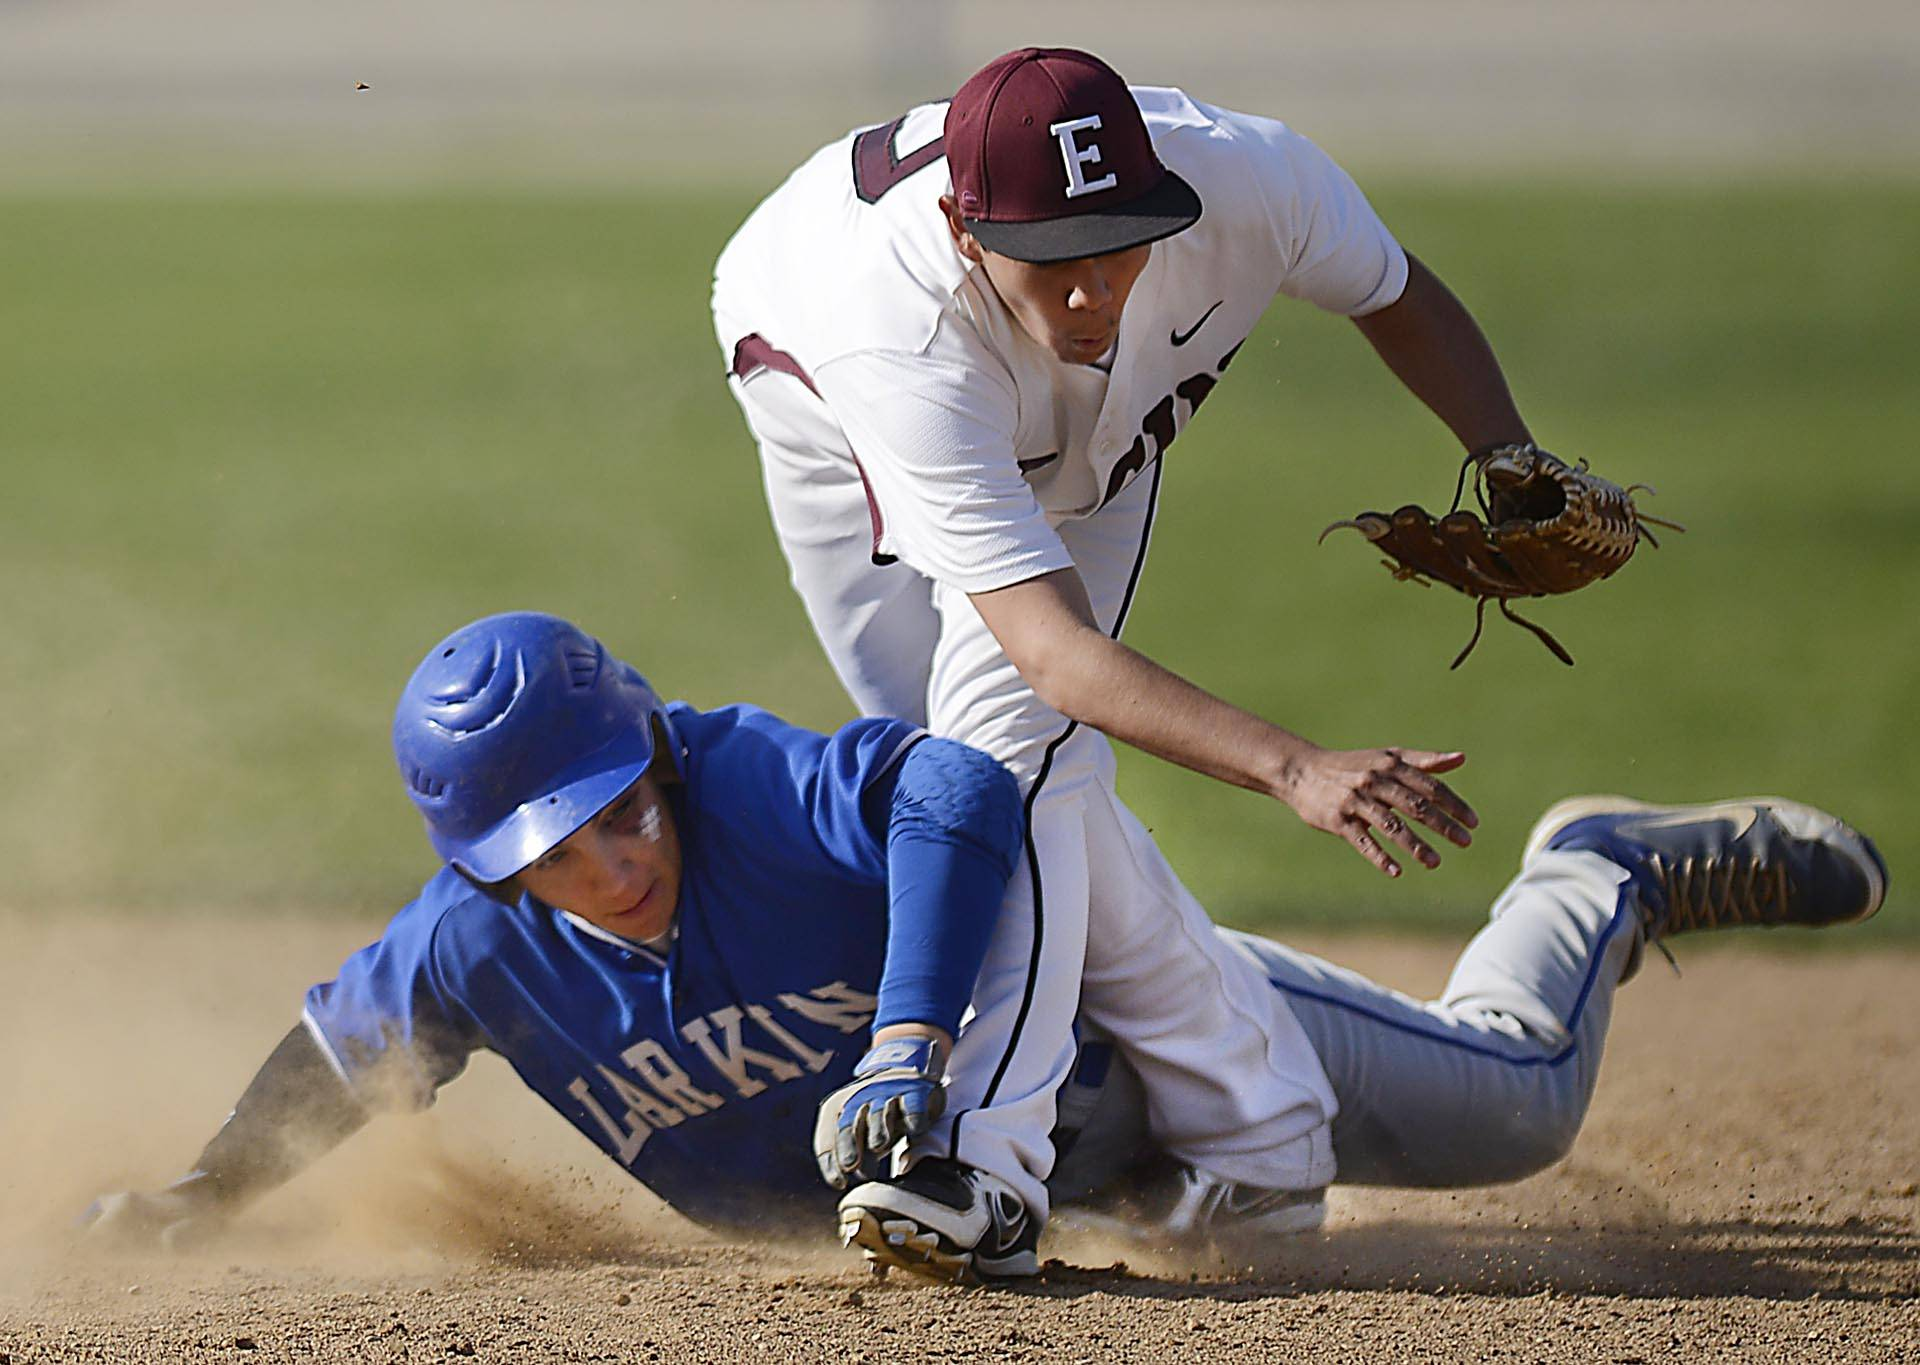 Trying to break up a double play, Larkin's Dan Lenz slides over the ankle of Elgin's Eddy Ramos Monday at Trout Park in Elgin. Ramos turned the double play, throwing out Larkin's Tanner Gardon in the third inning. He fell to the ground but stayed in the game.